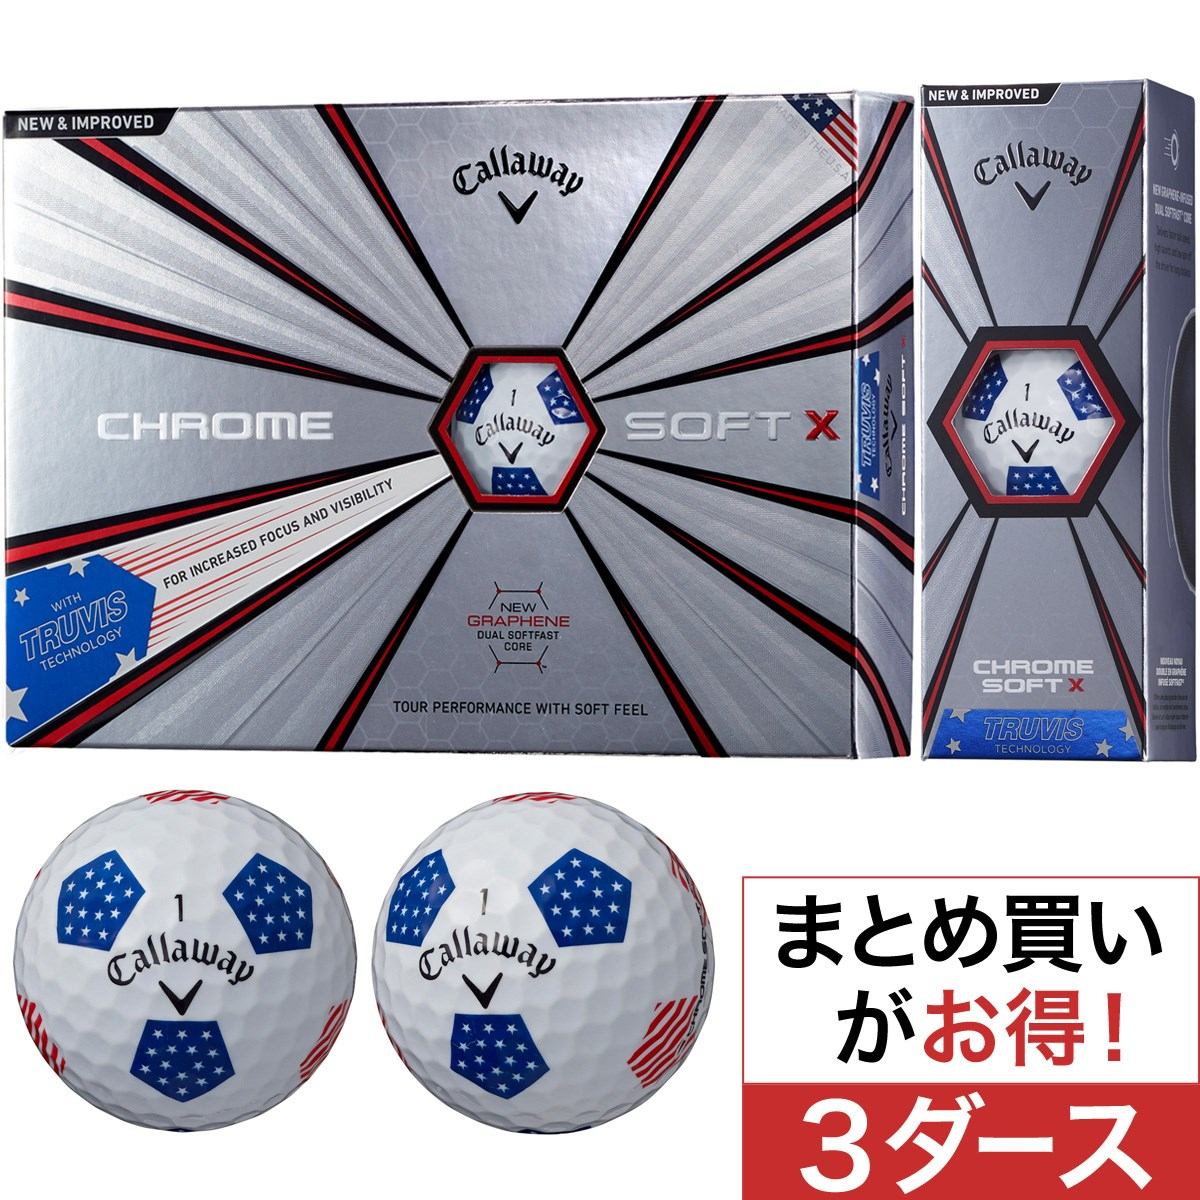 CHROME SOFT X 18 TRUVIS ボール 3ダースセット